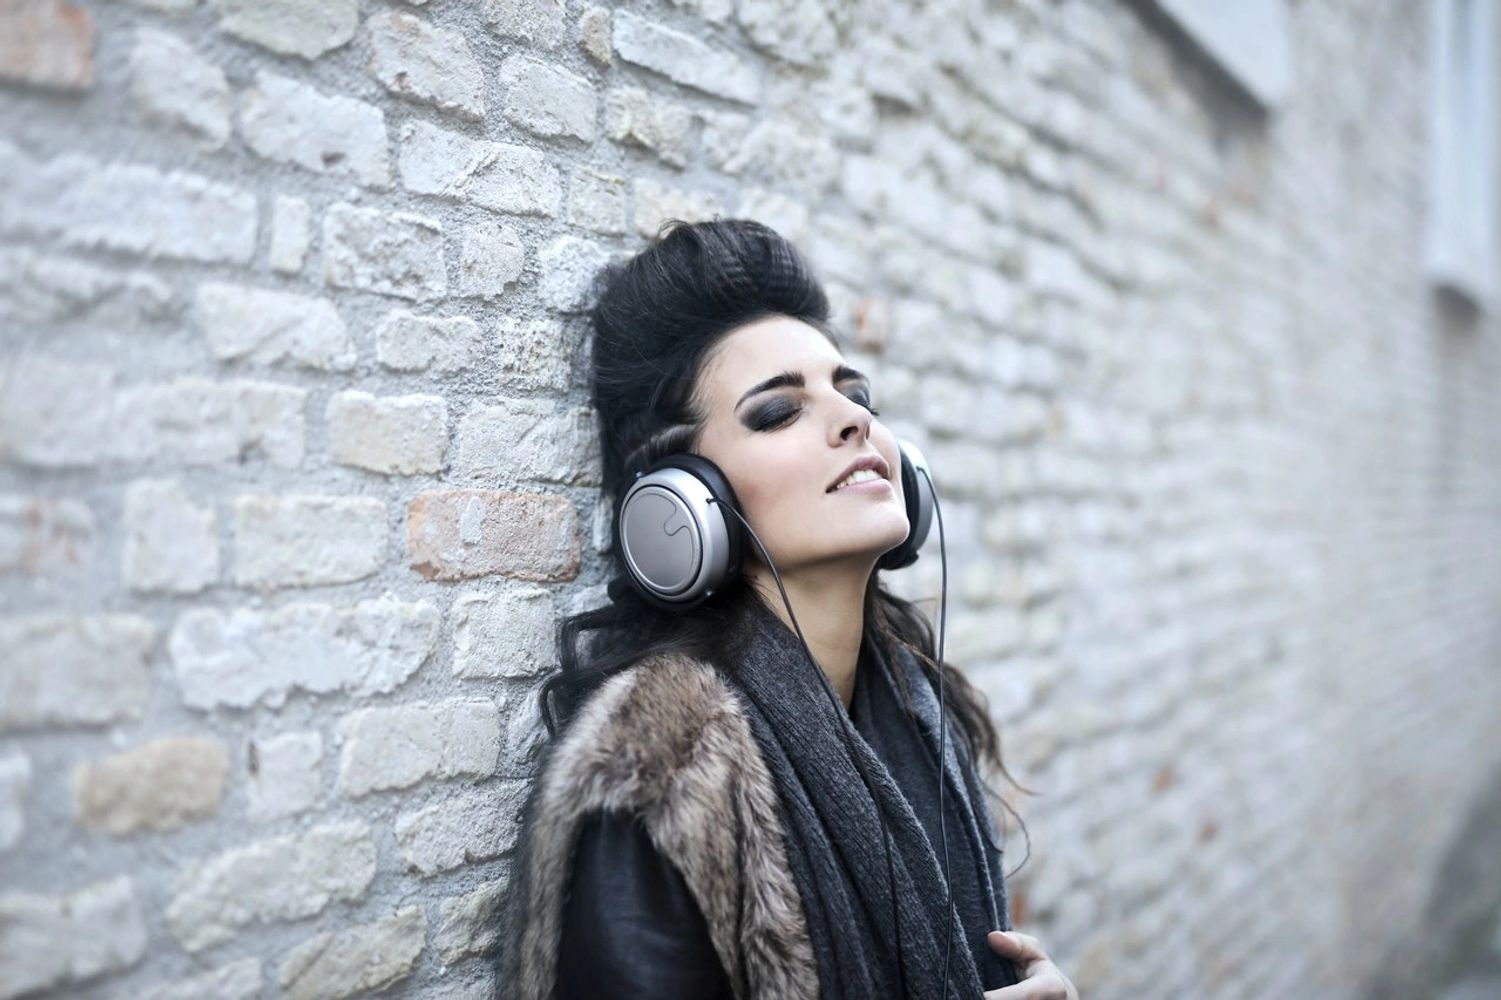 Girl wearing headphones listening to music and leaning on wall.